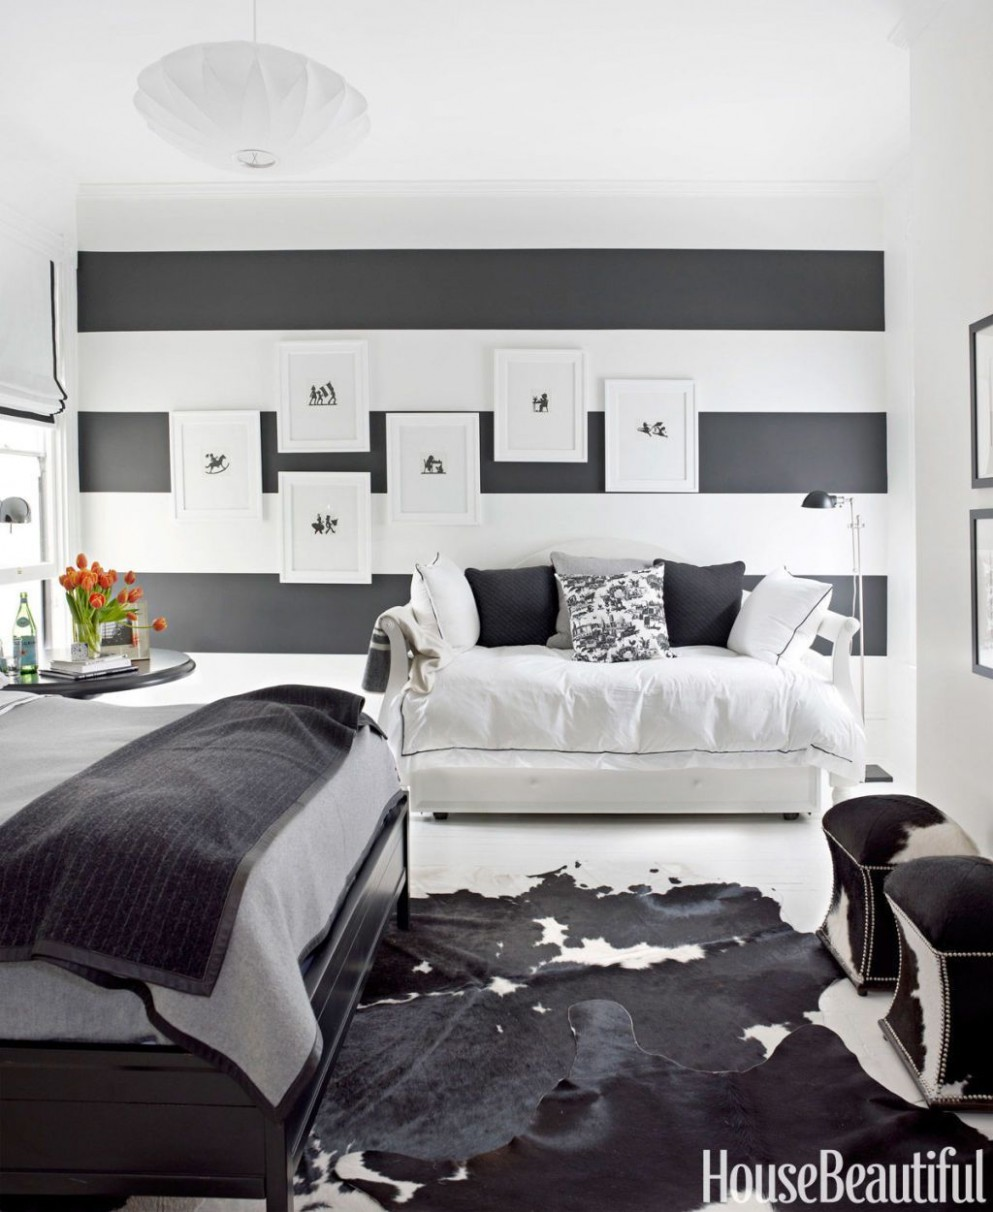 12 Beautiful Black and White Bedroom Ideas - Black and White Decor - Bedroom Ideas Black And White